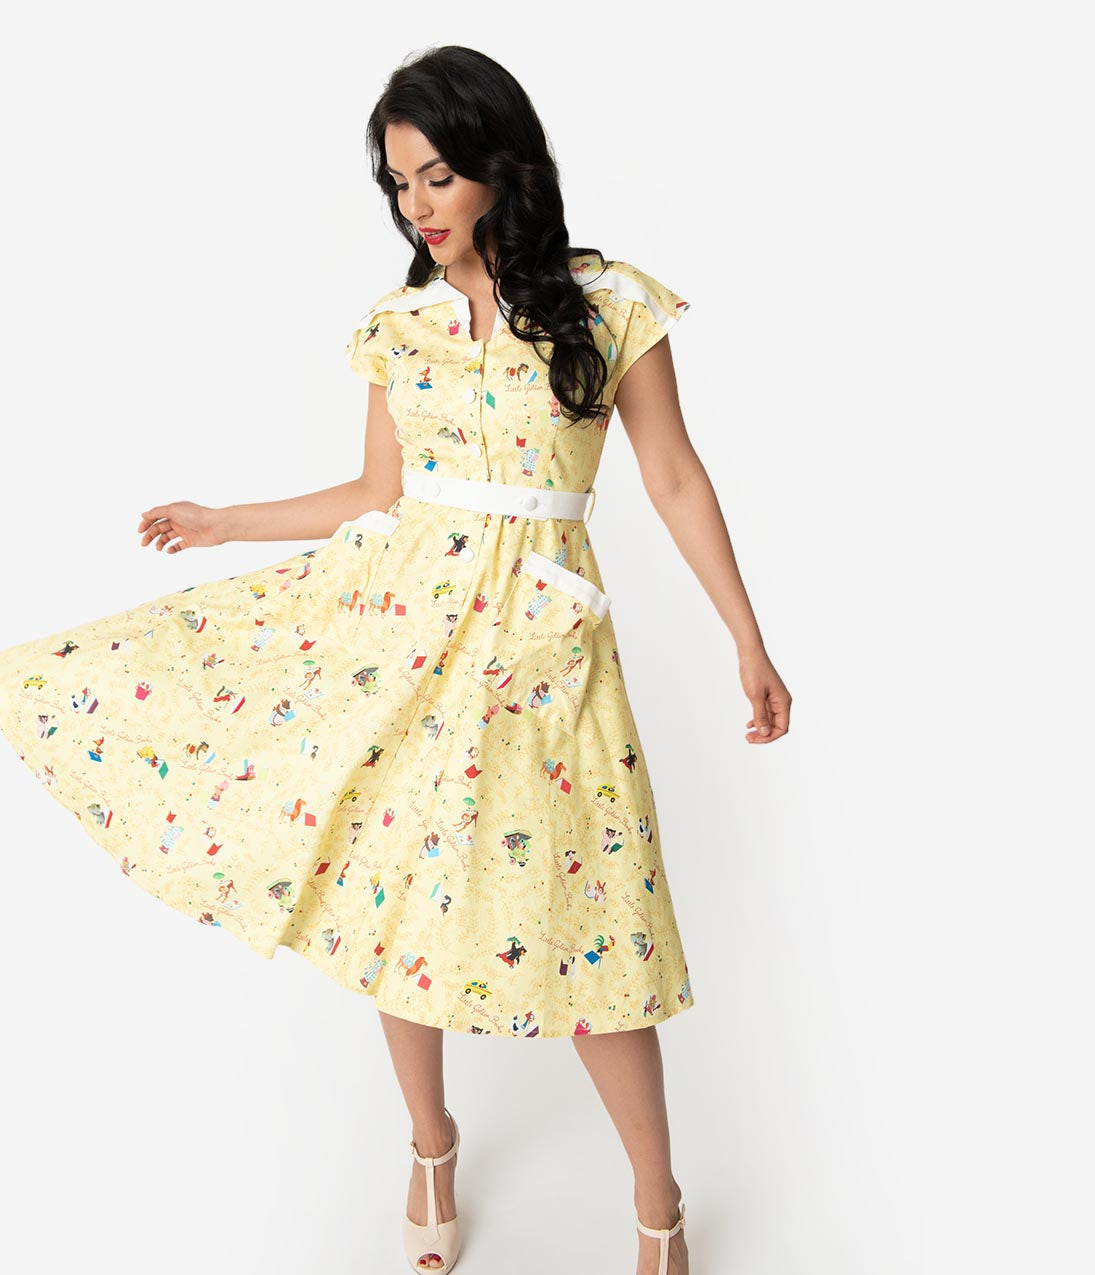 Pin Up Dresses | Pinup Clothing & Fashion Little Golden Books X Unique Vintage Yellow Print Hedda Swing Dress $148.00 AT vintagedancer.com